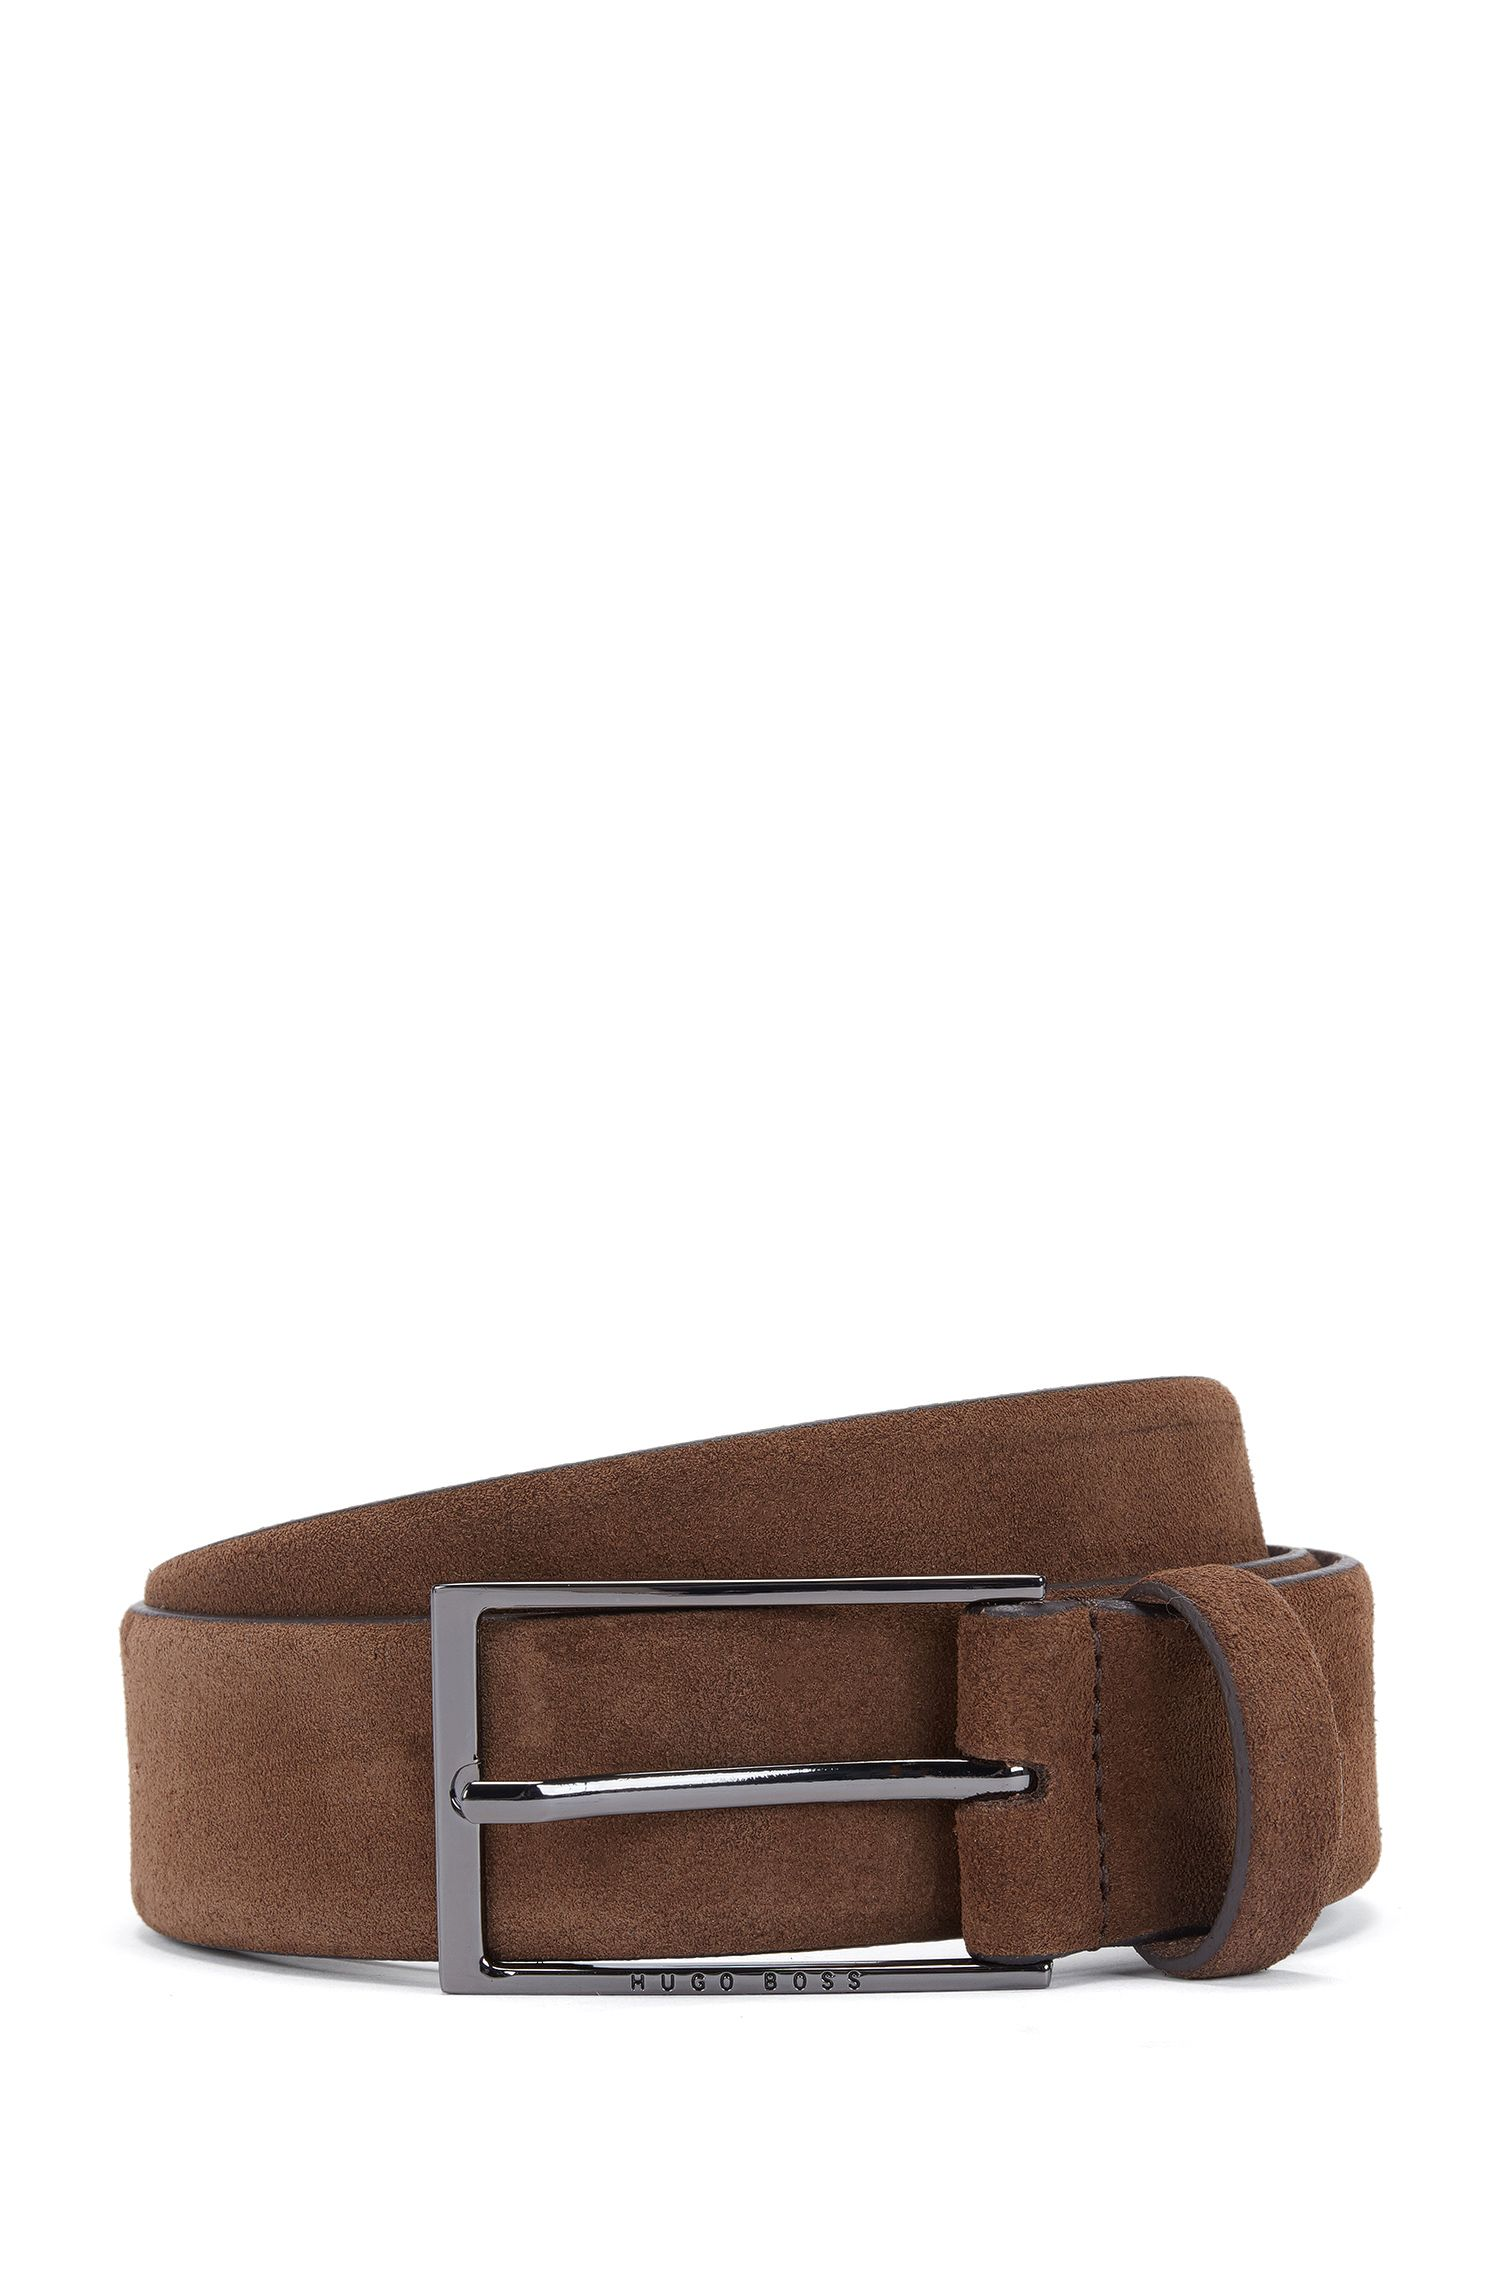 Suede Belt | Calindo Sz Sd